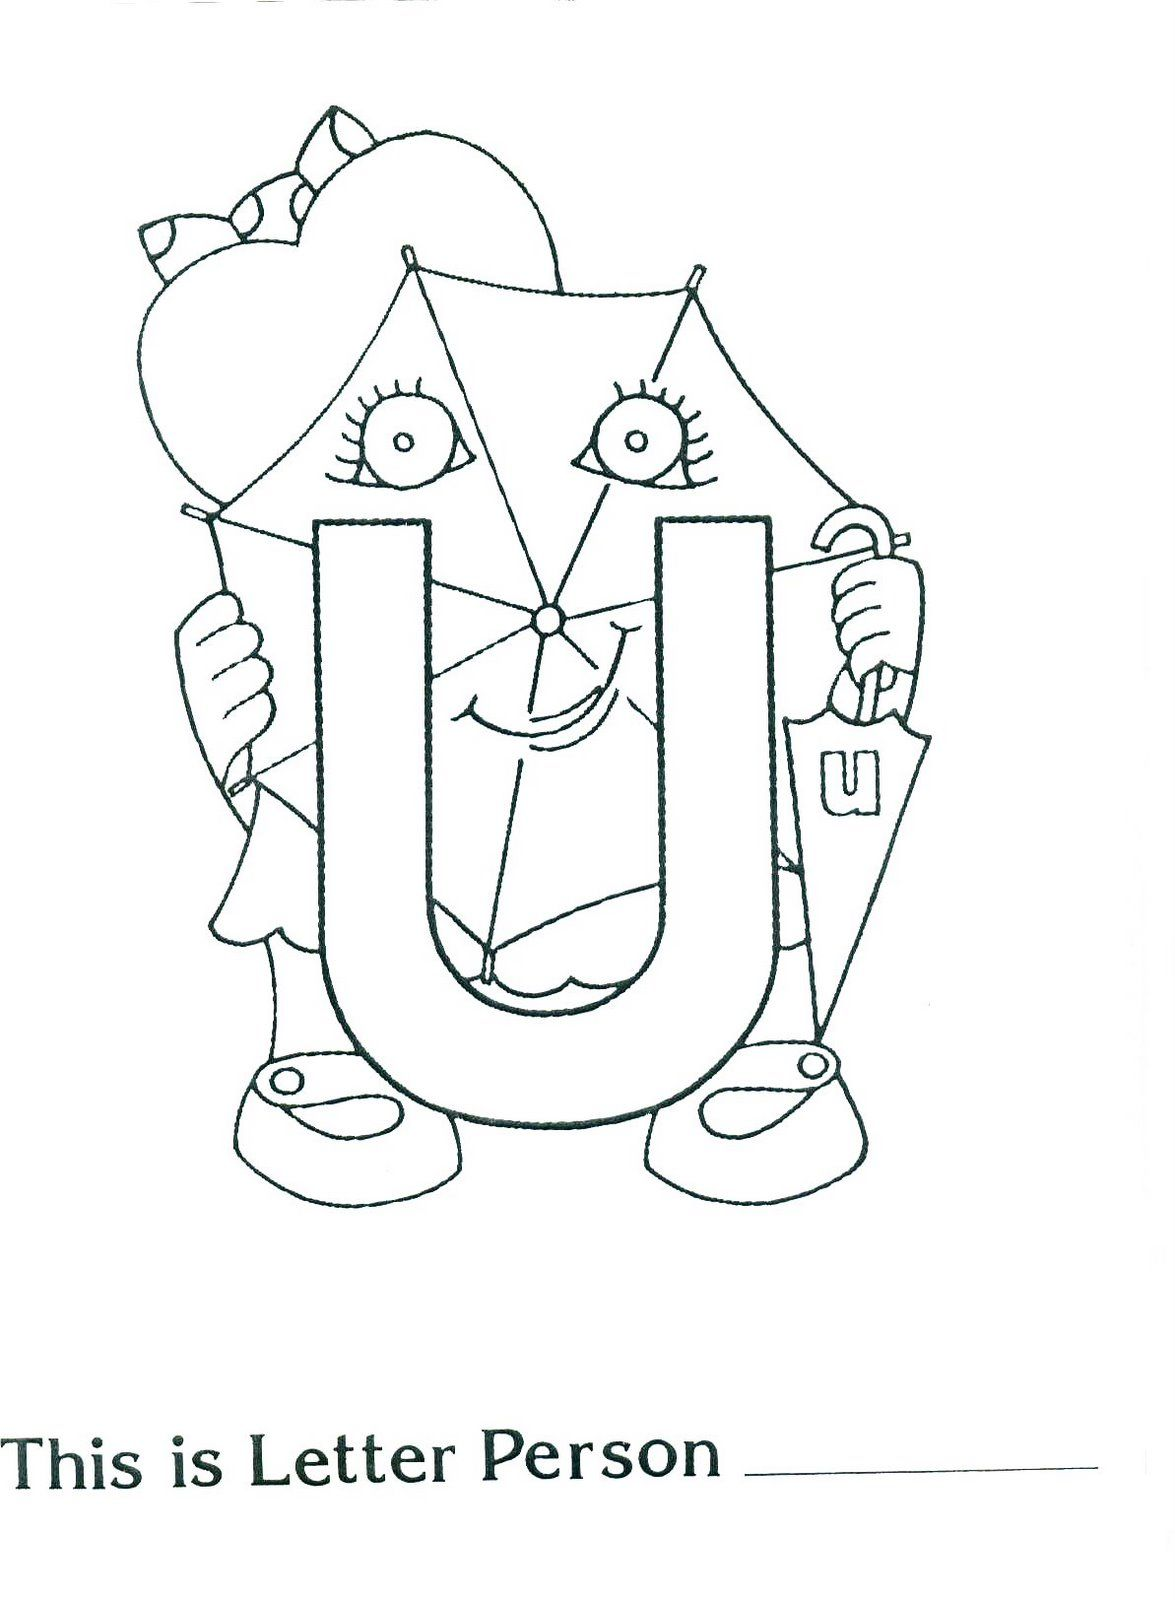 Brilliant Beginnings Preschool: Letter Person U Printable Coloring ...